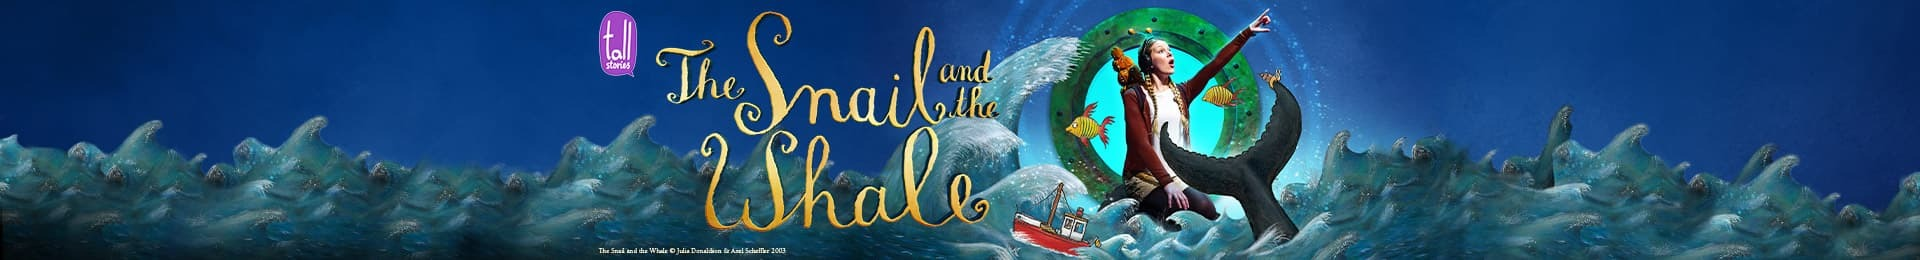 The Snail and the Whale banner image